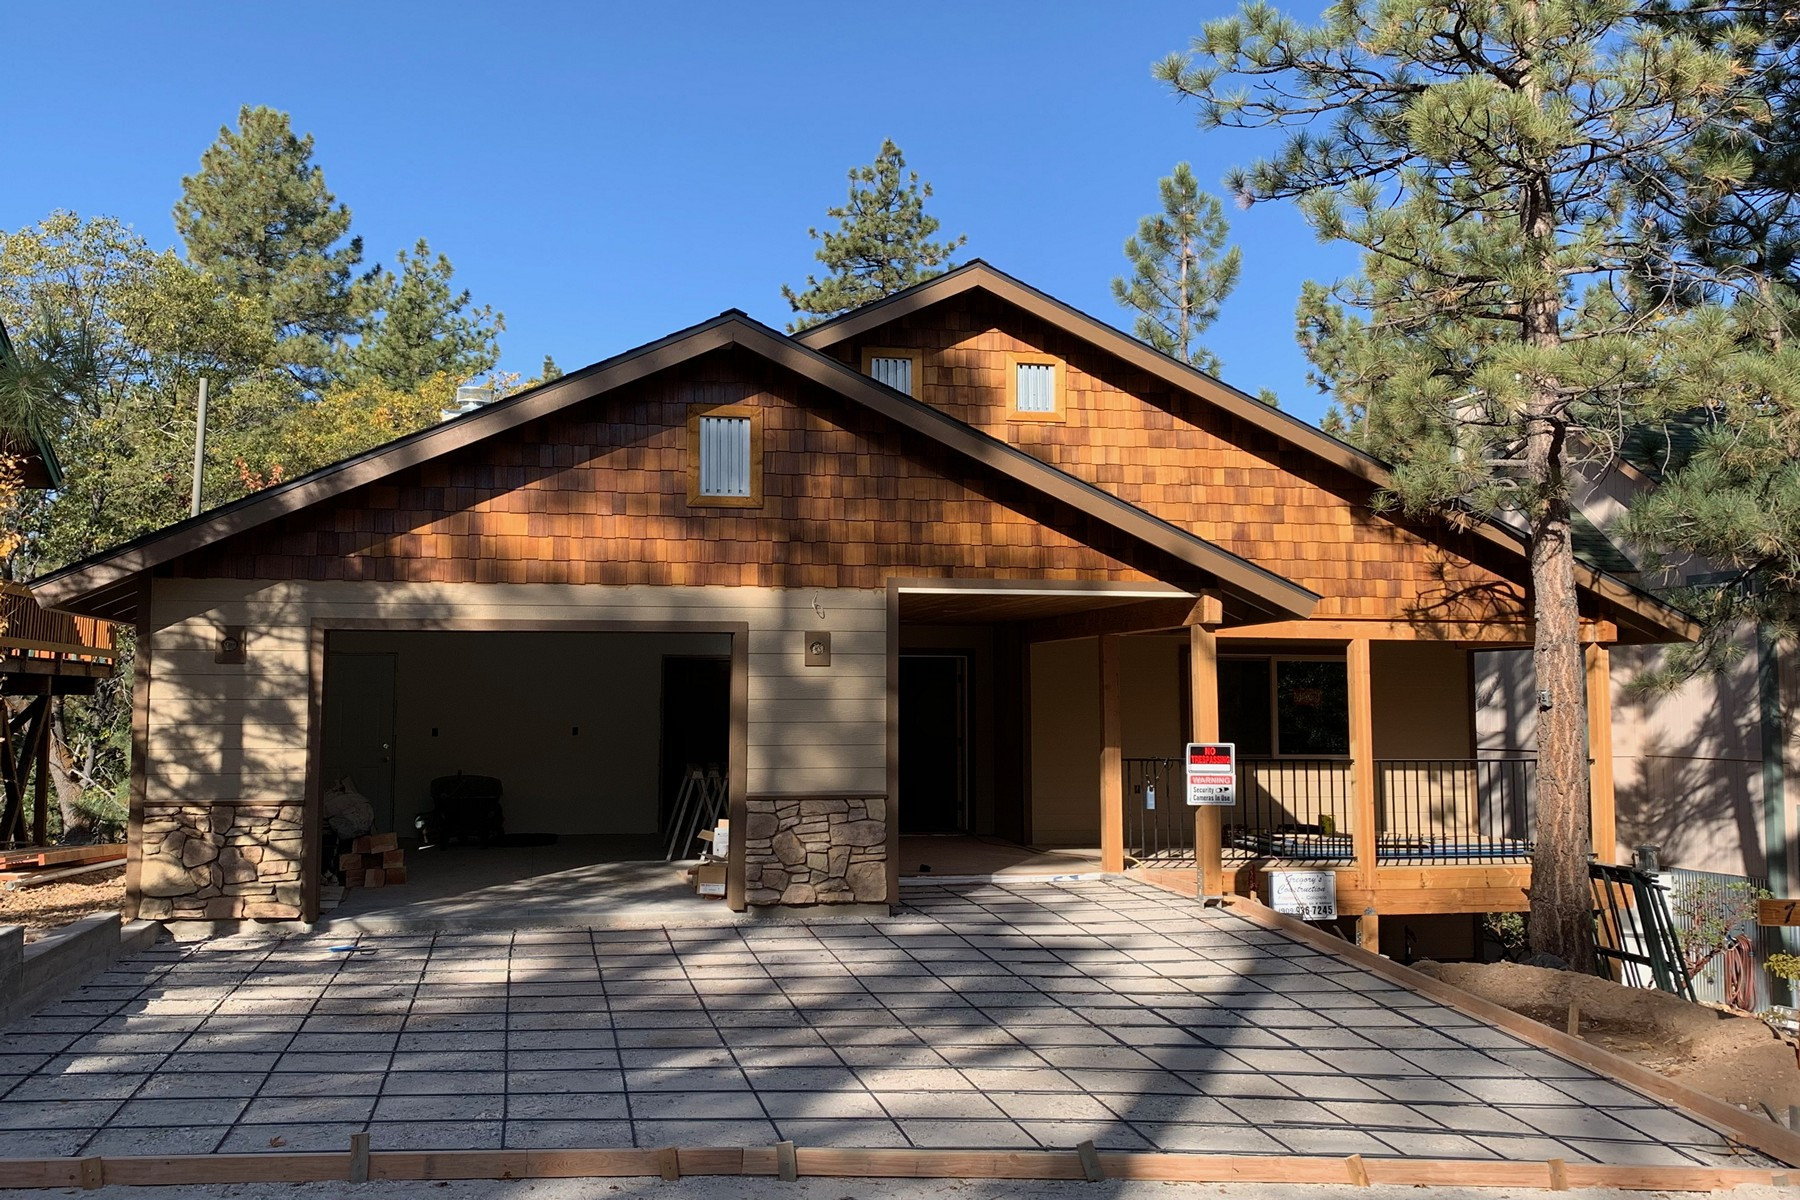 Single Family Homes for Sale at 764 Conklin Road, Big Bear Lake, CA 92315 764 Conklin Road Big Bear Lake, California 92315 United States